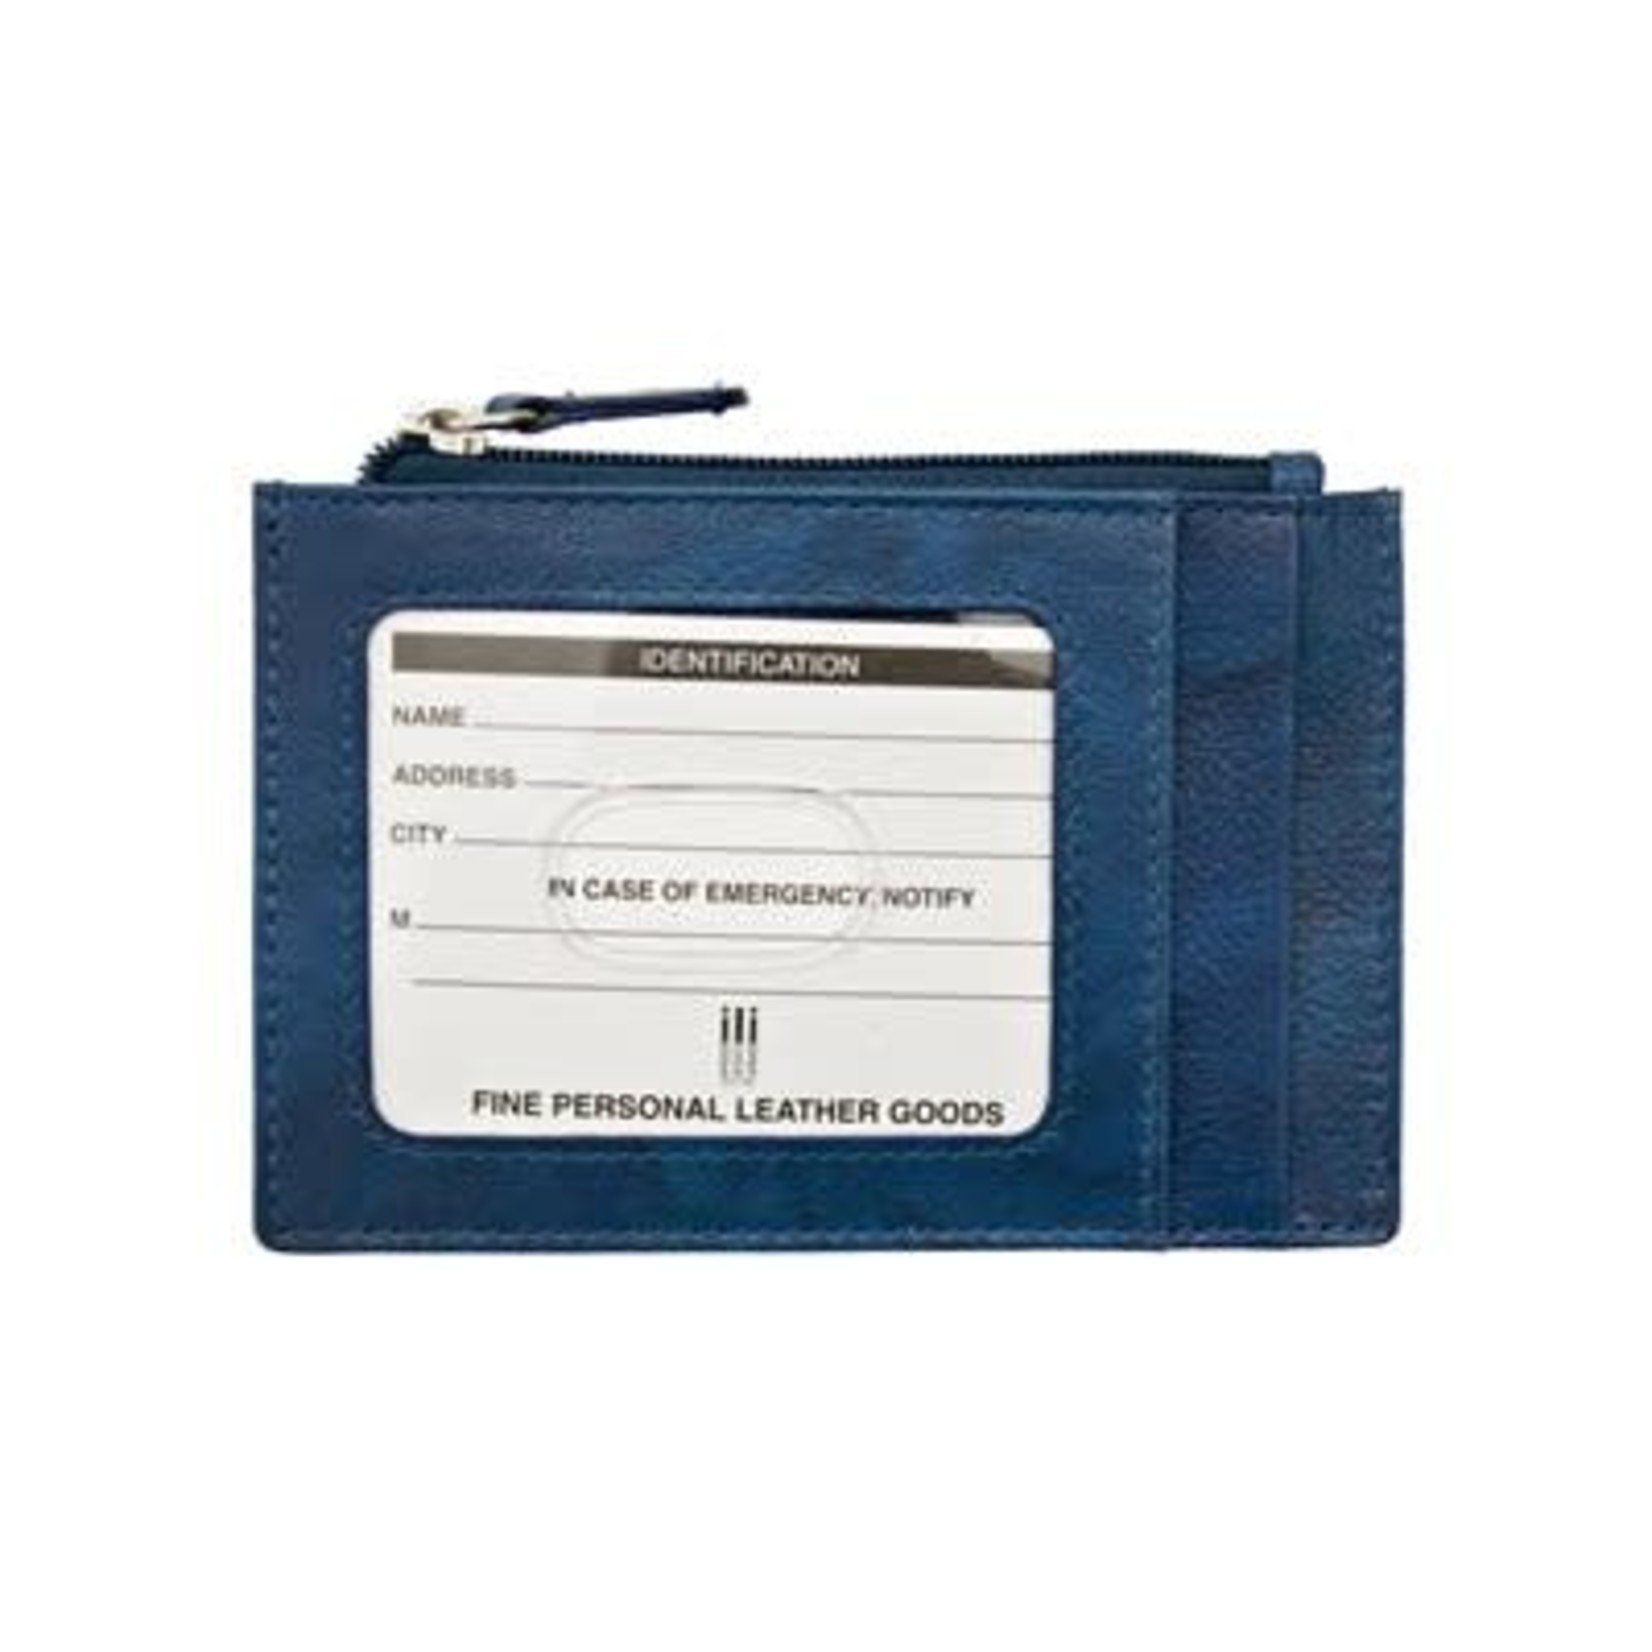 Leather Handbags and Accessories 7416 Jeans Blue - RFID Card Holder